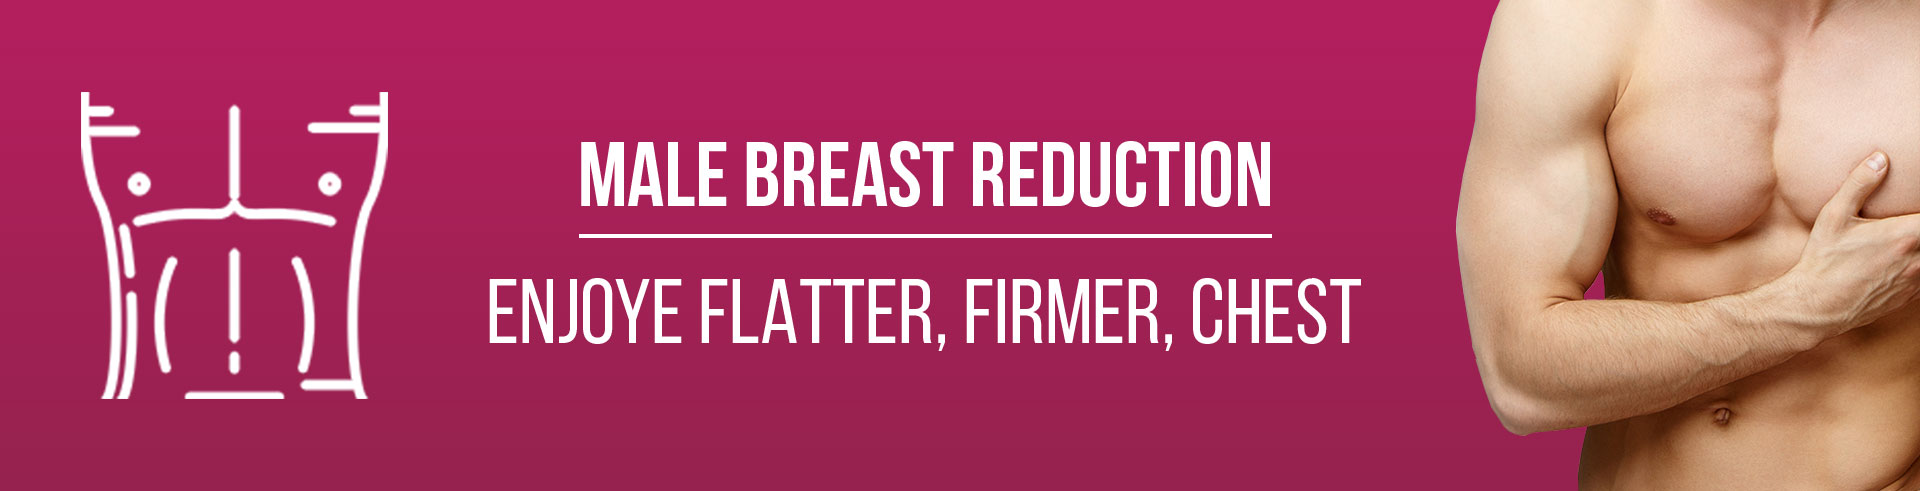 Male breast reduction in Bhopal